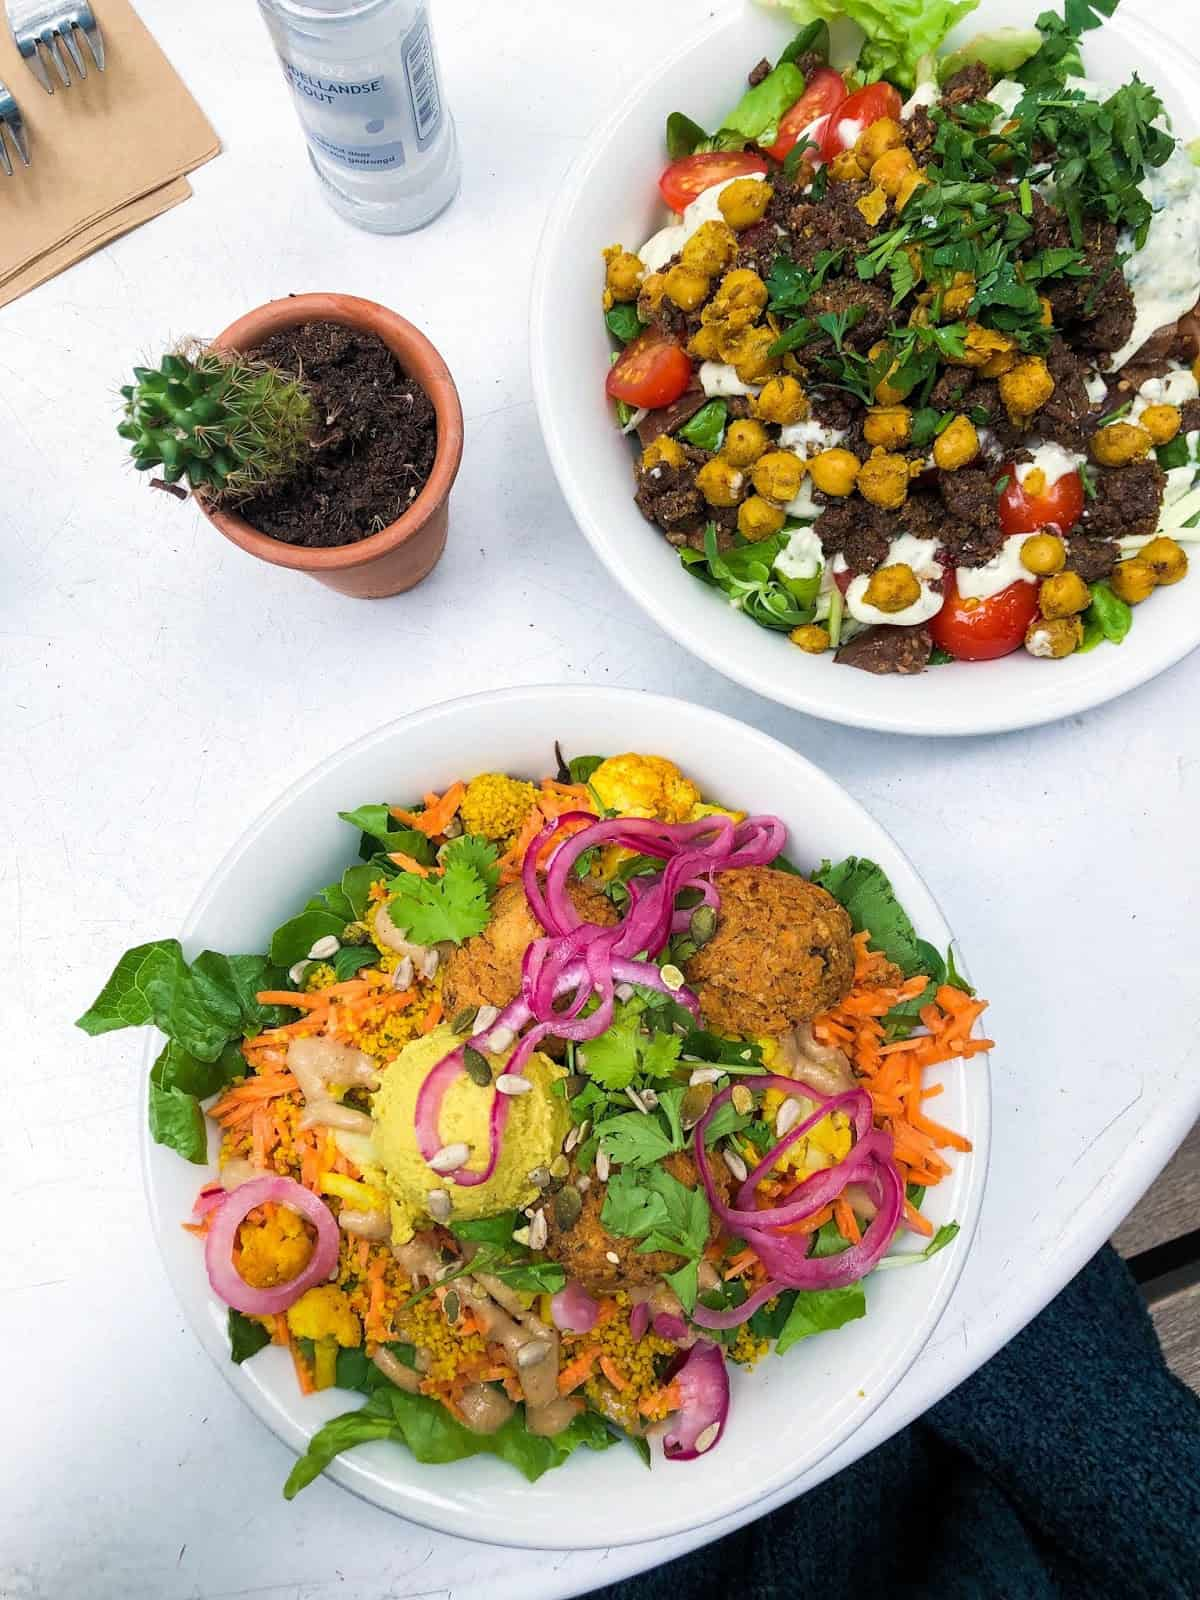 SLA Amsterdam vegan salad bar